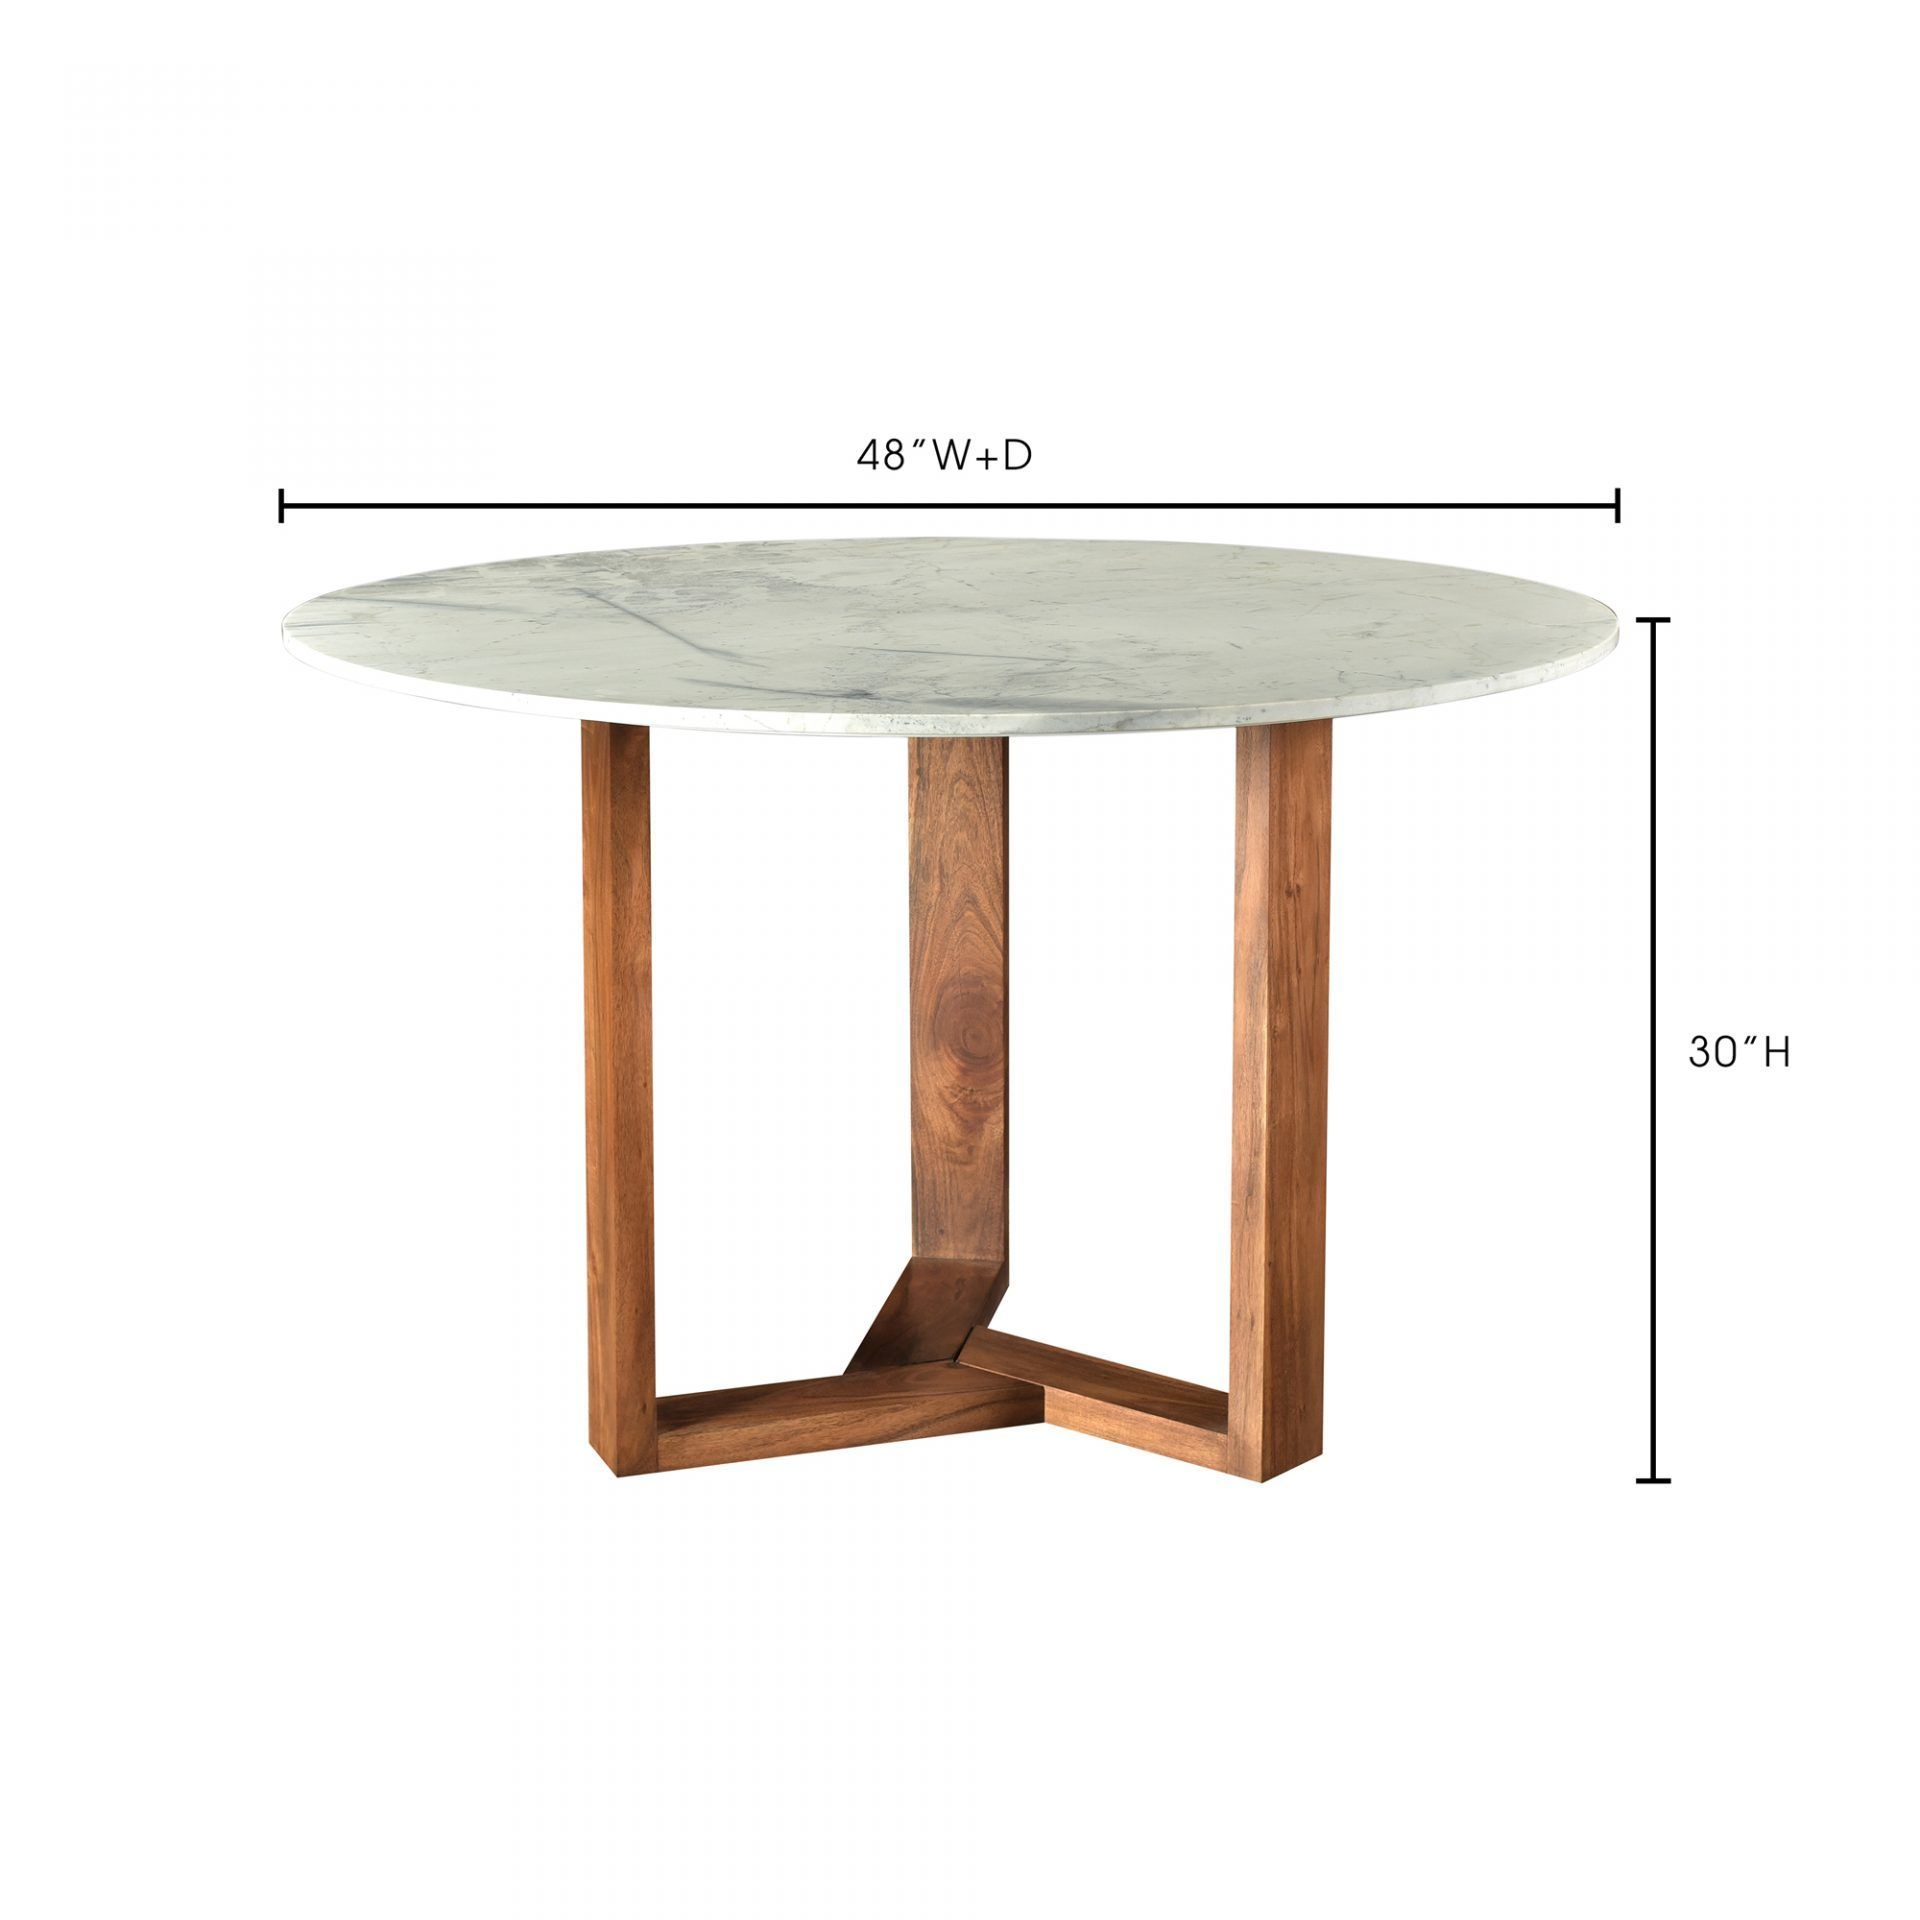 Rio Round Marble Dining Table - Dimensions